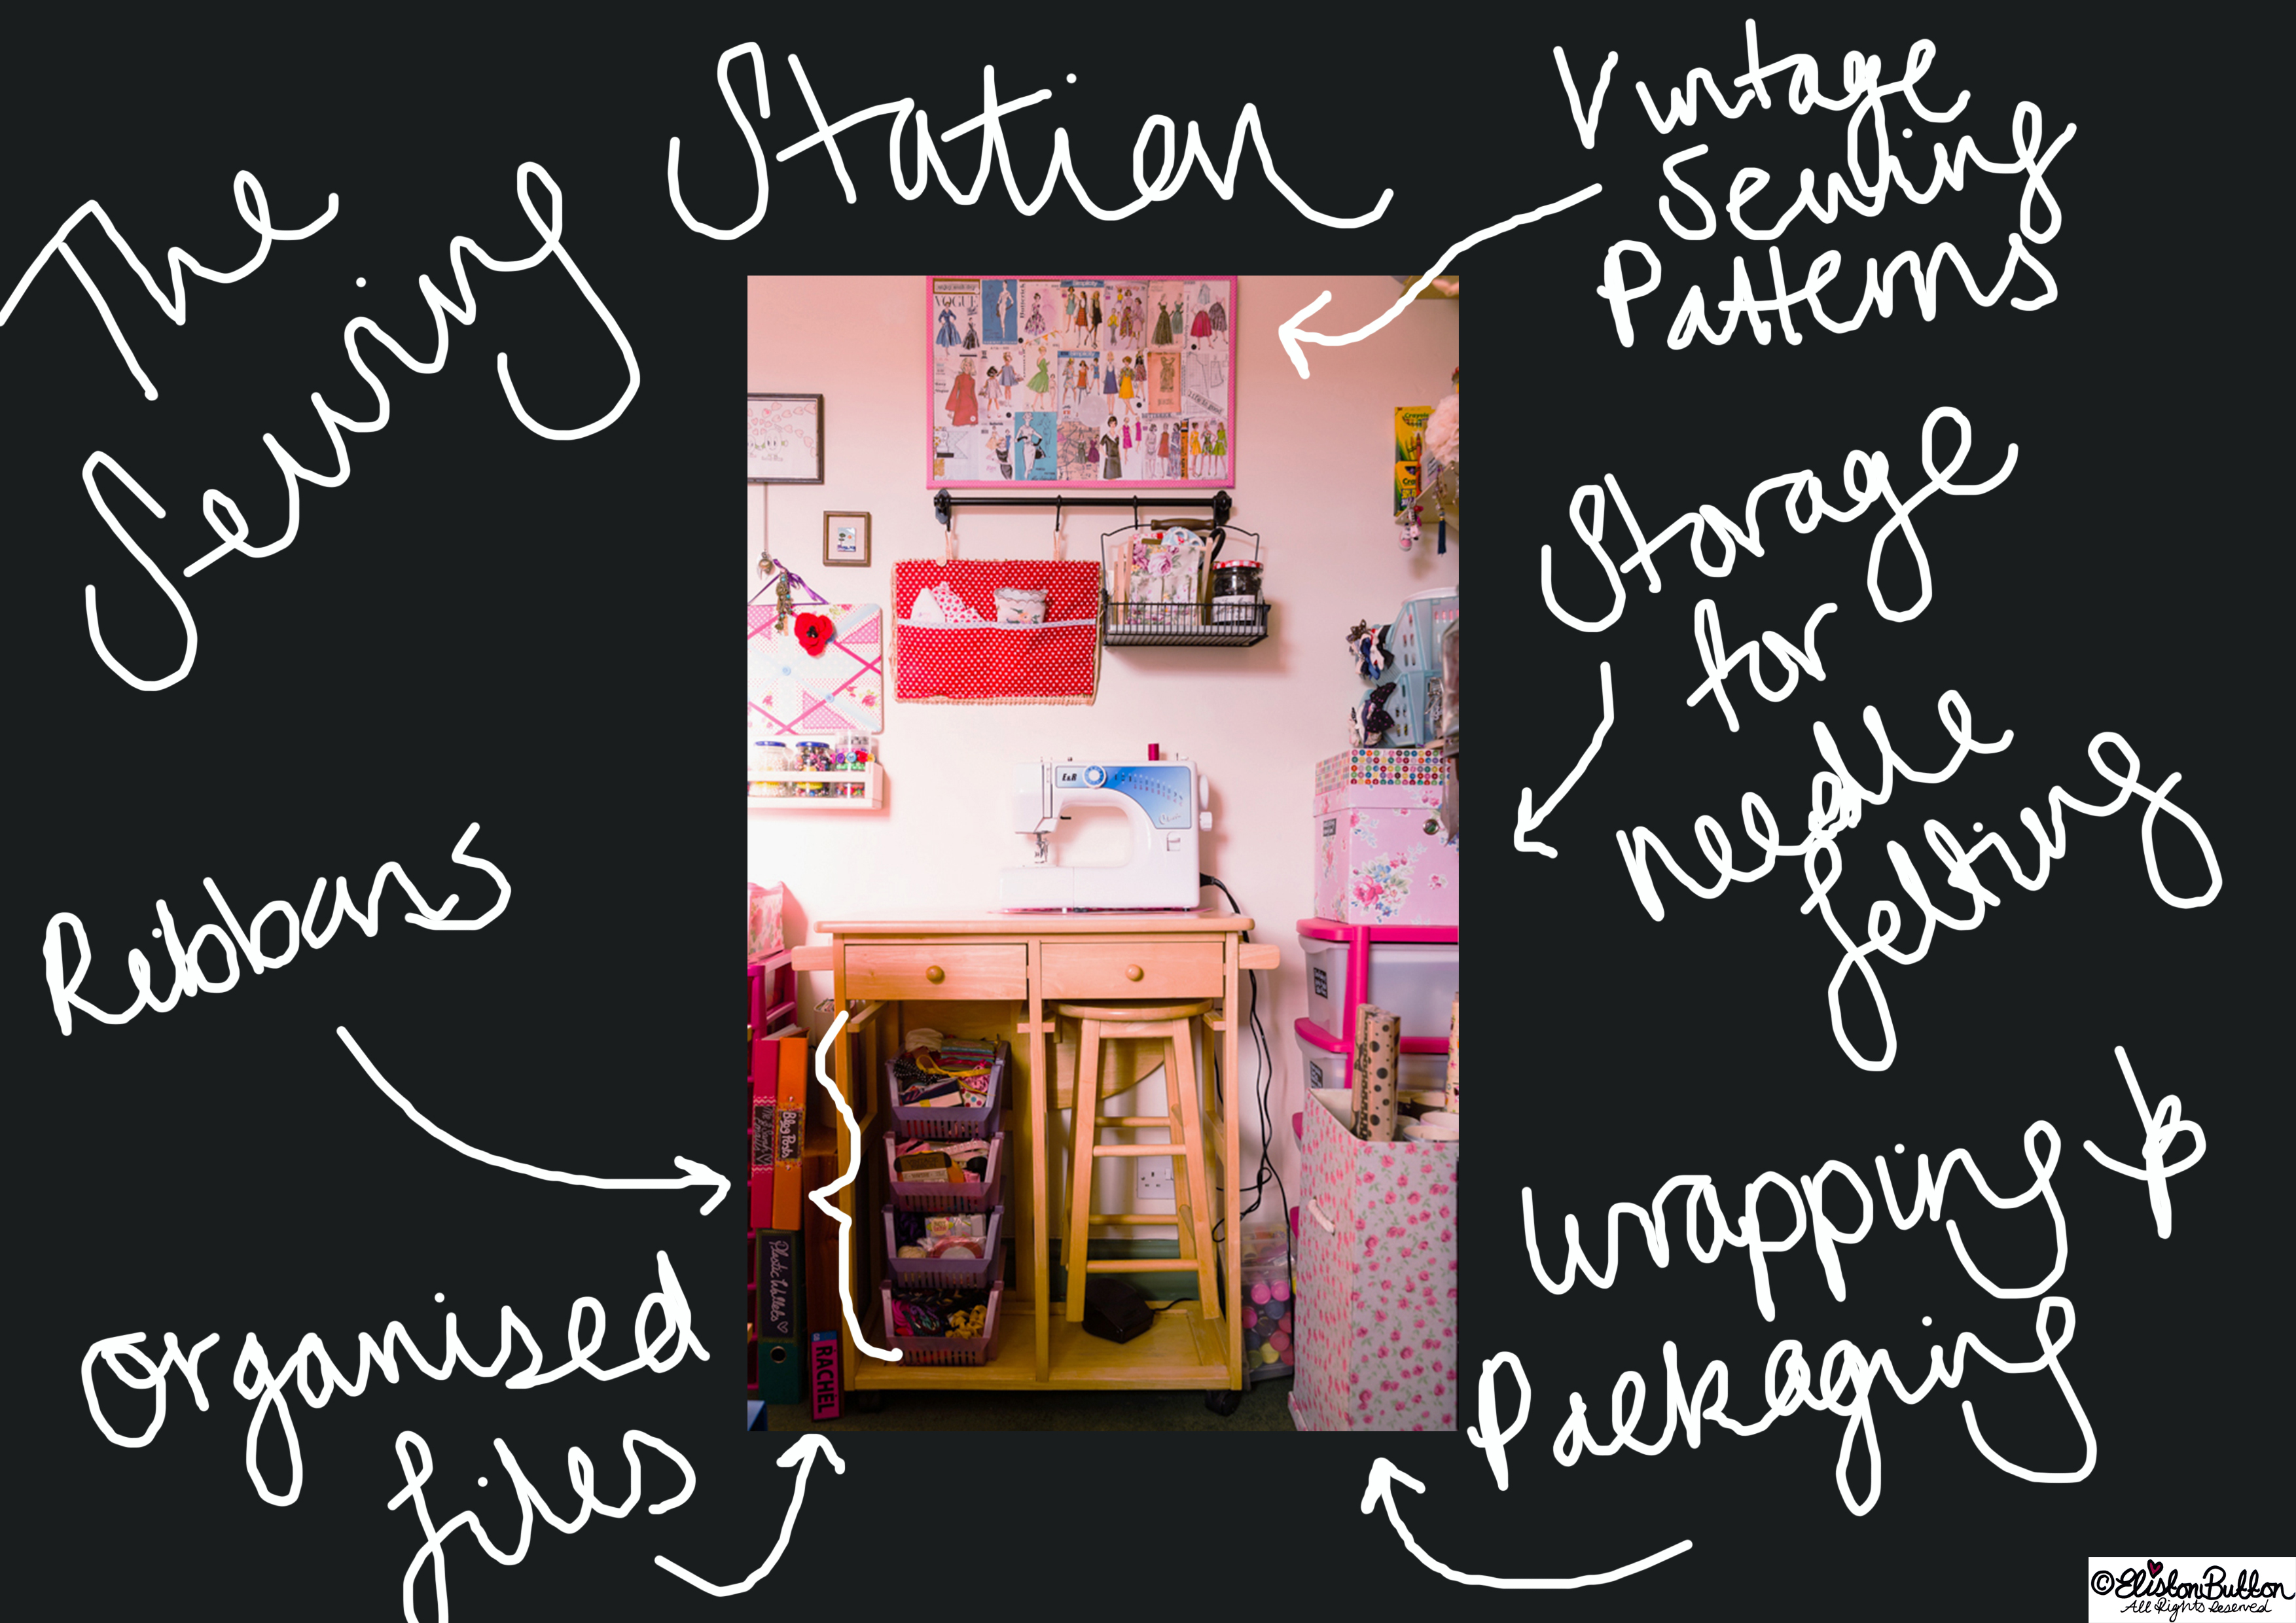 Eliston Button Headquarters 2013 - Sewing Station - Where The Magic Happens... at www.elistonbutton.com - Eliston Button - That Crafty Kid – Art, Design, Craft & Adventure.